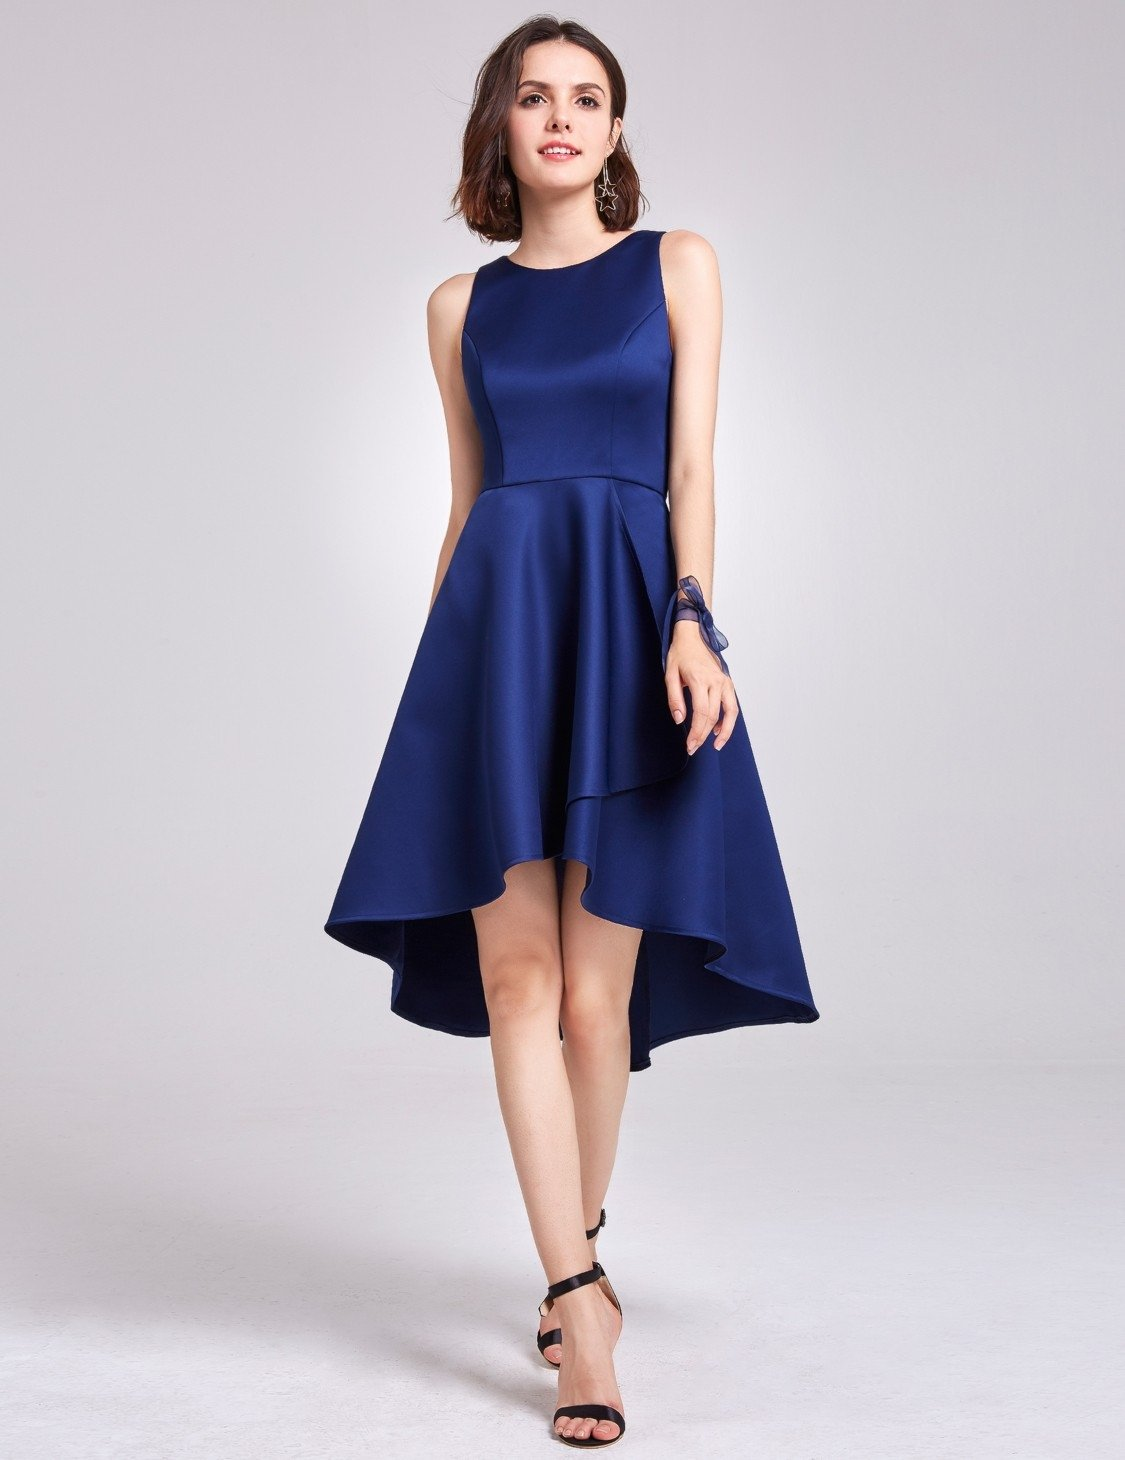 High Low Navy Blue Bridesmaid Dress